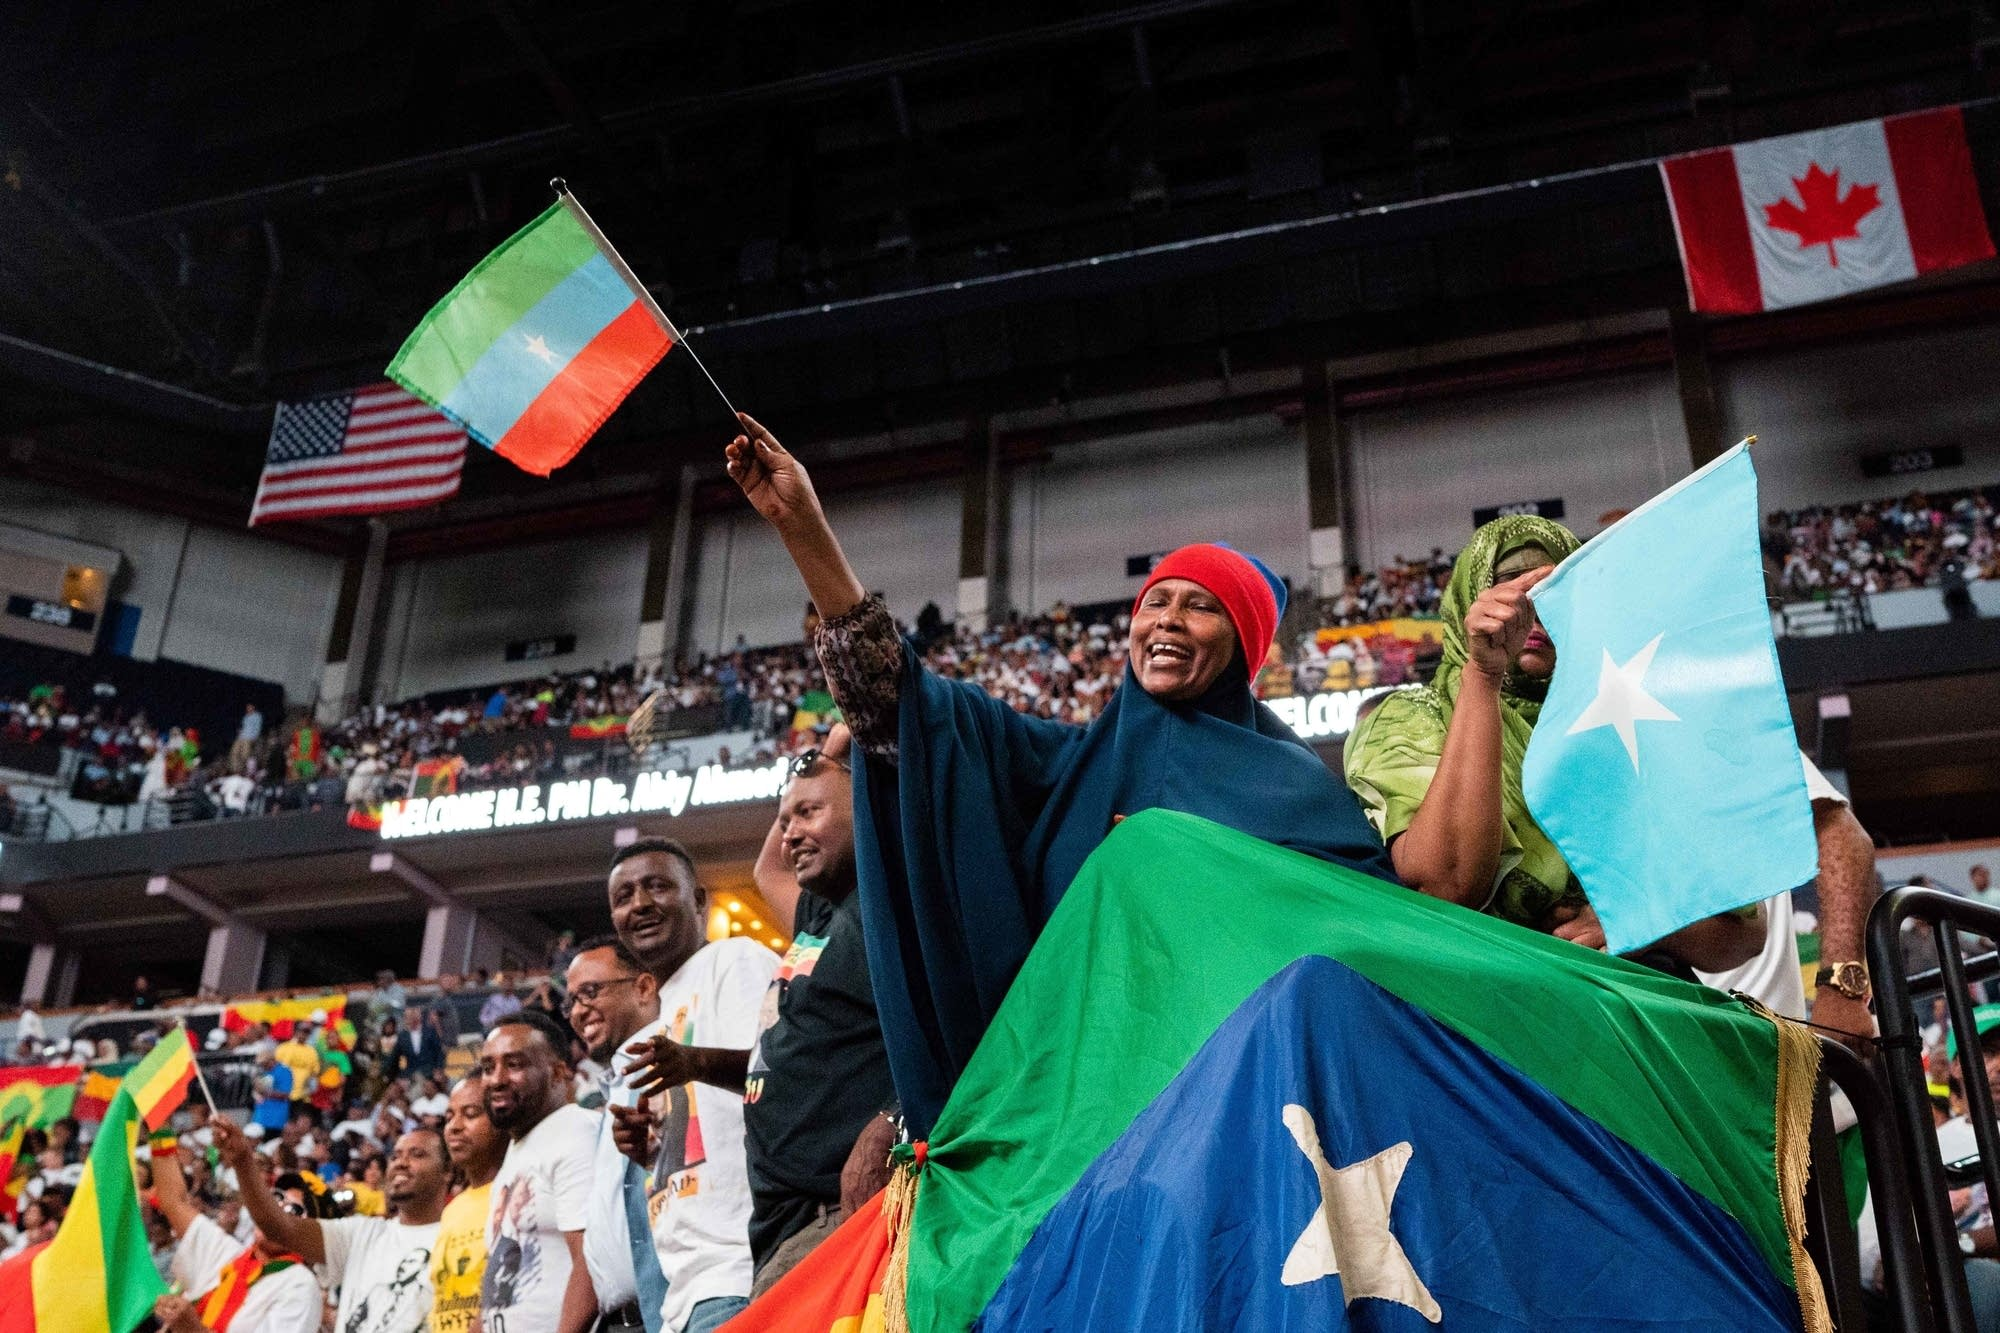 Attendees wave flags before Abiy Ahmed's speech.